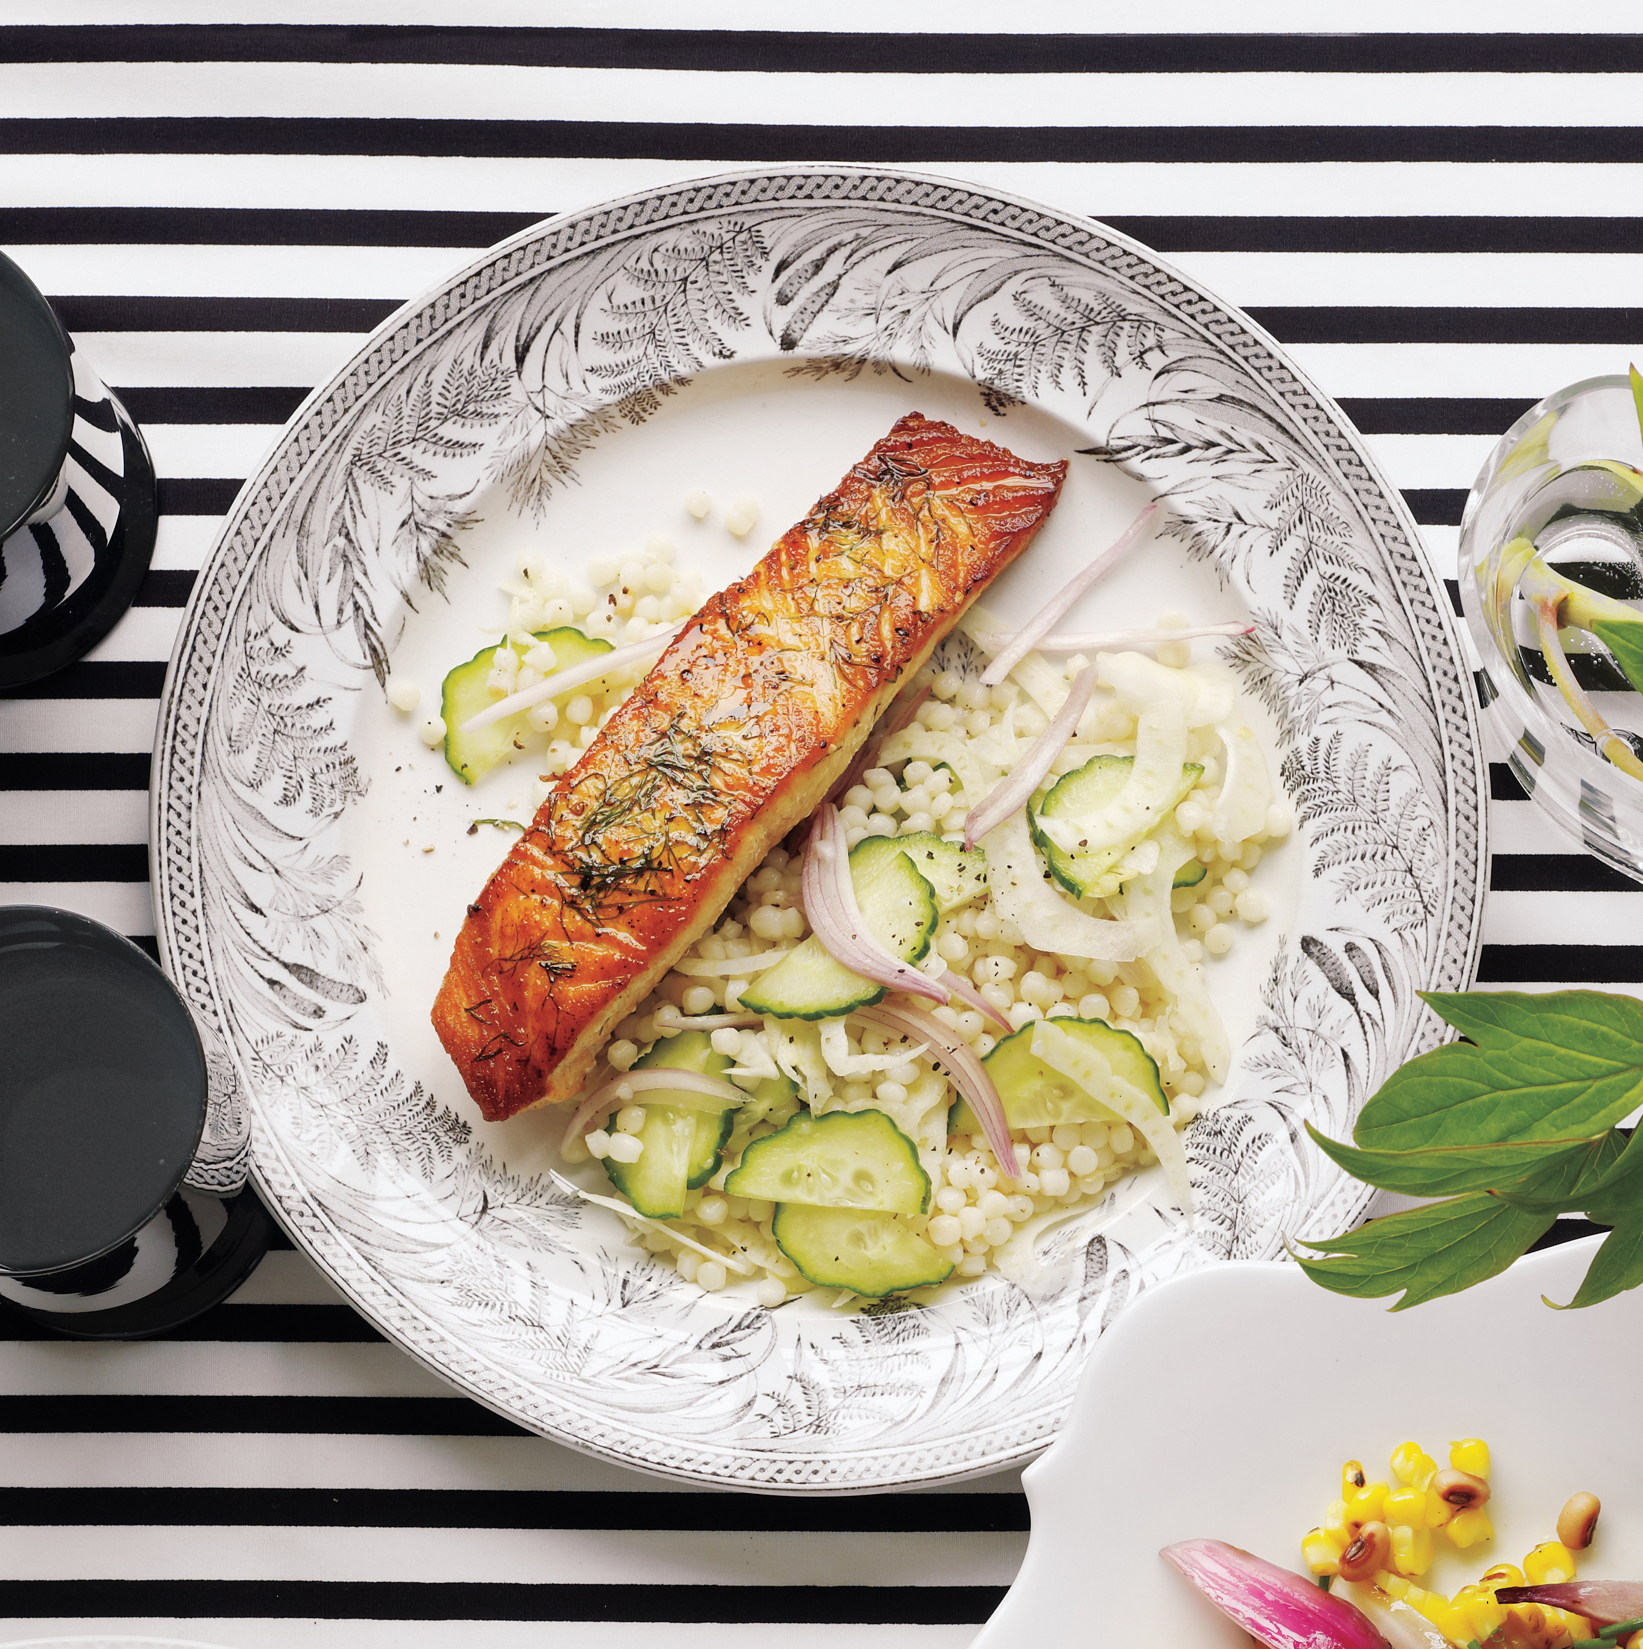 Seared Salmon With Israeli Couscous Salad